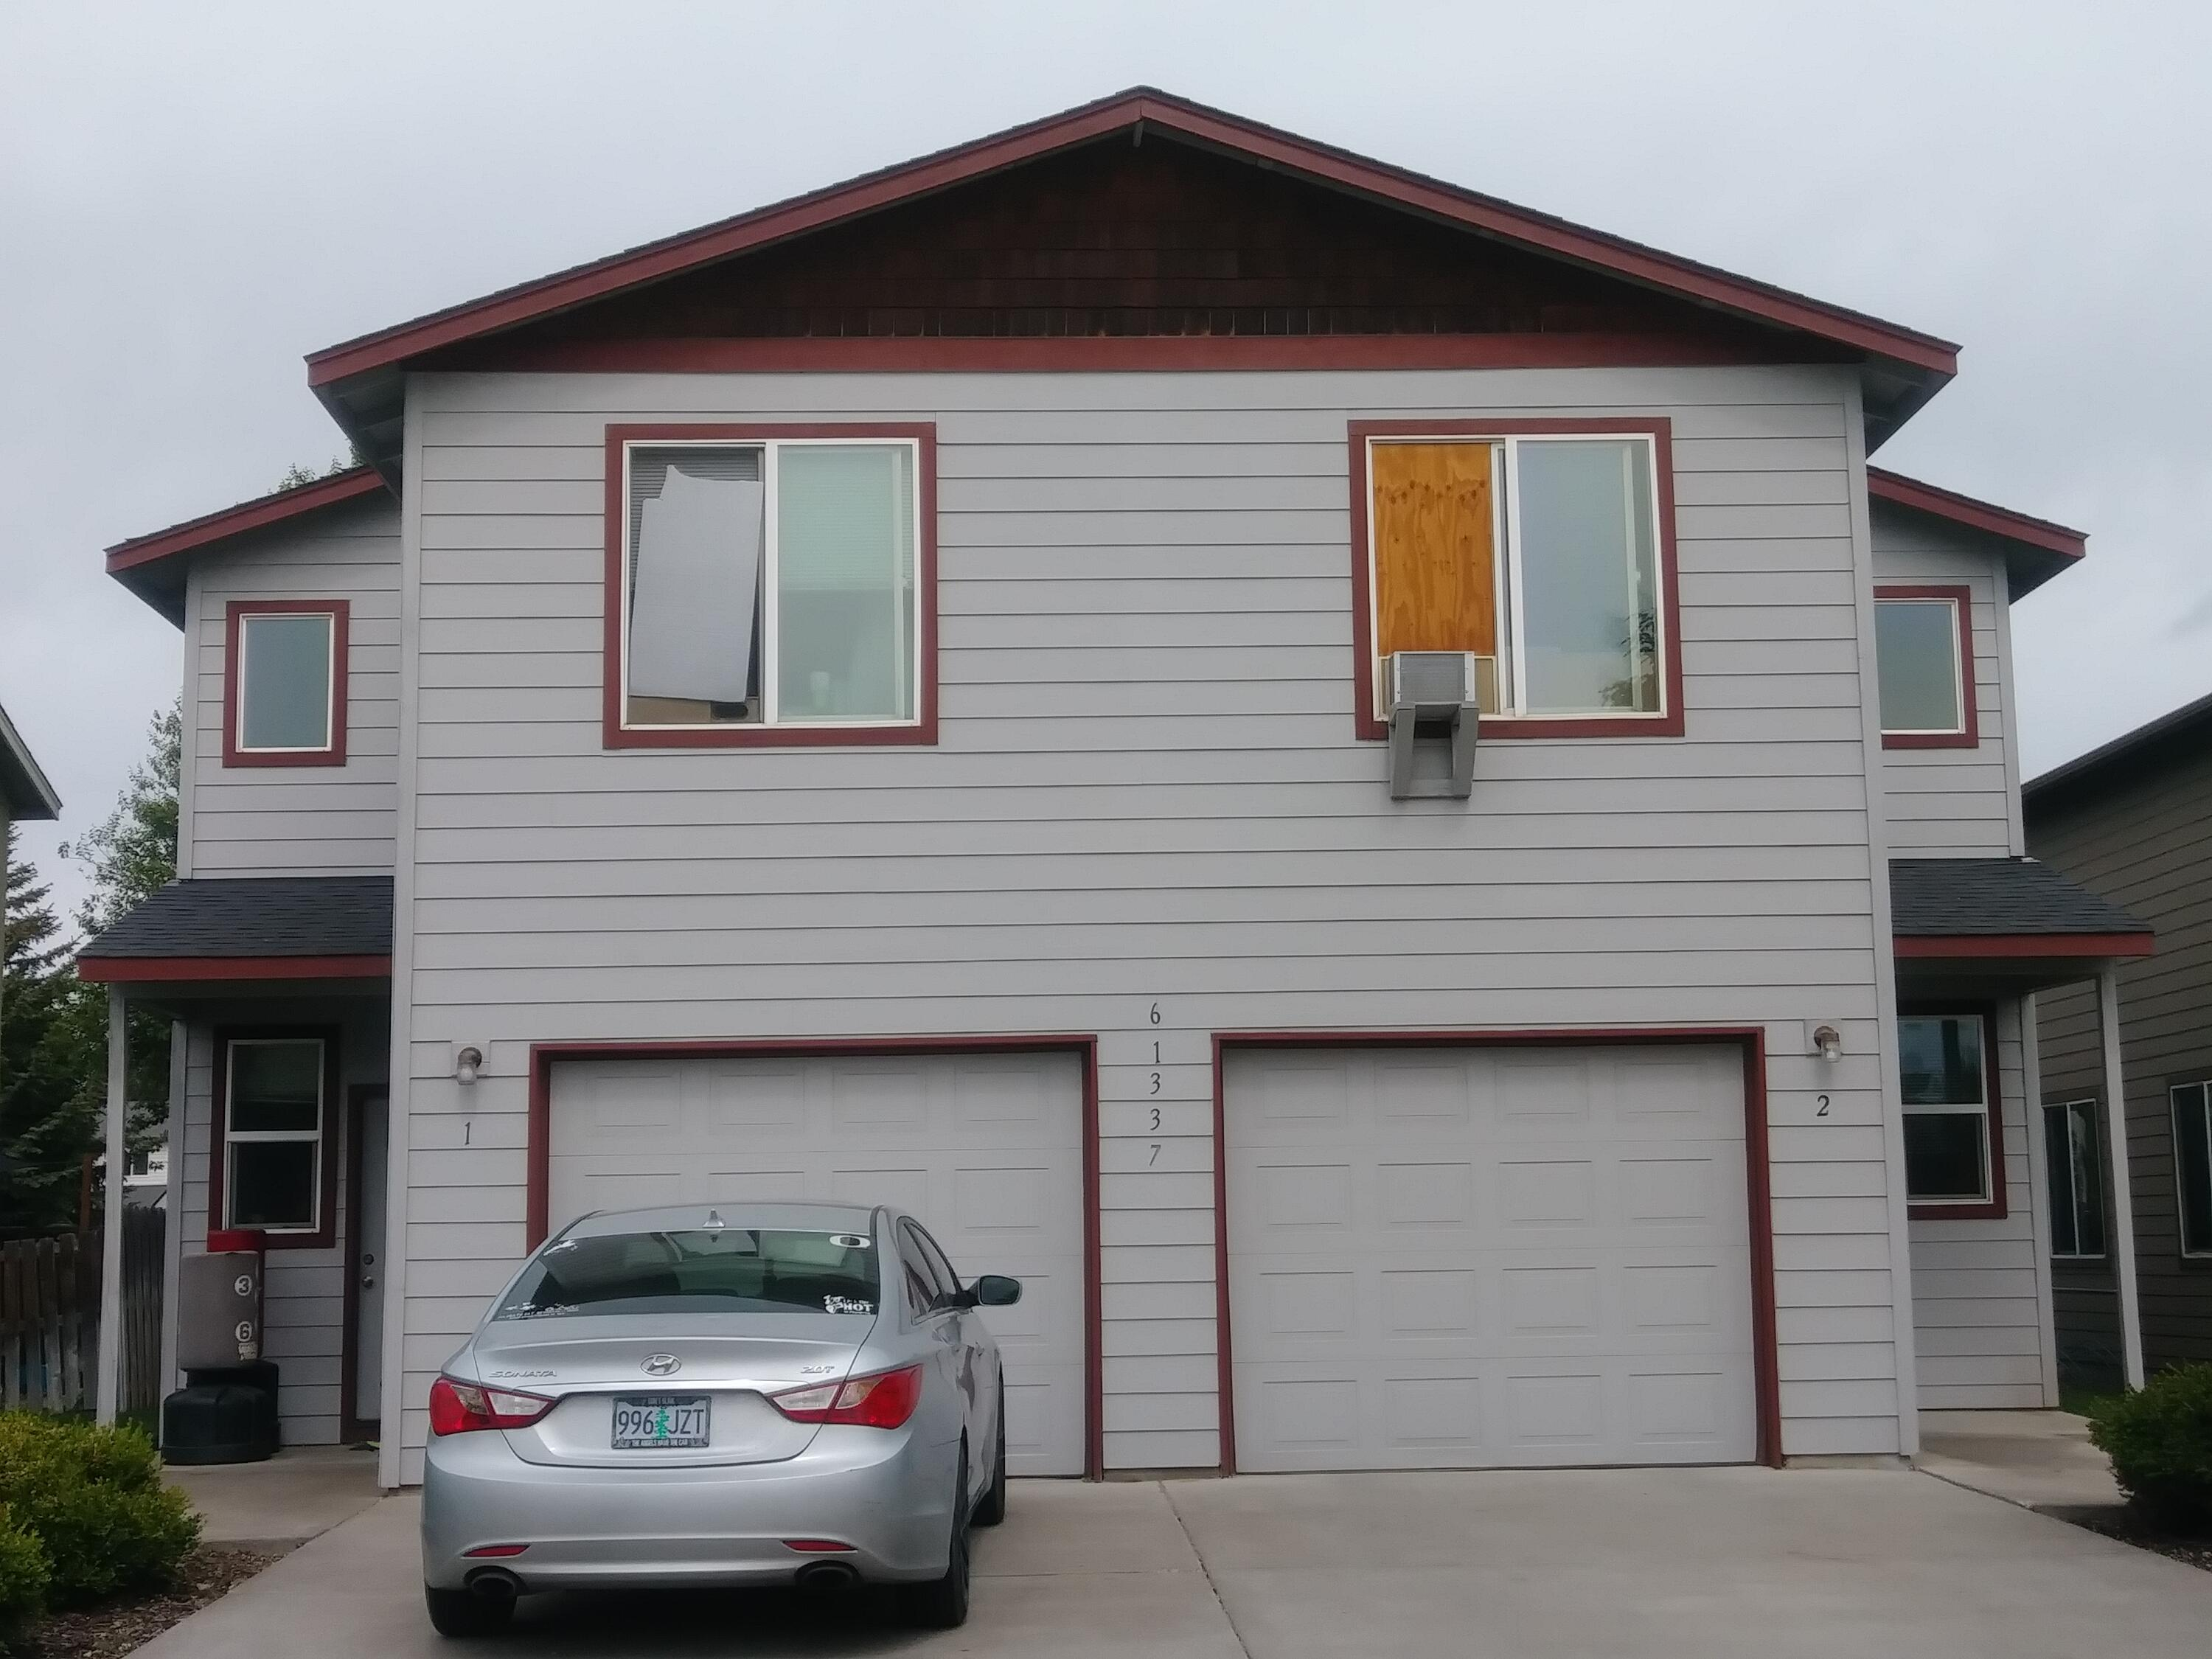 Excellent investment opportunity to own a spacious, well-maintained duplex in SW Bend!  Each unit has 1522 sqft, 3 bedrooms, 2.5 baths, washer and dryer.  Fenced backyard with patio/deck.  Attached single-car garages.  Great location near shopping, schools, and more.